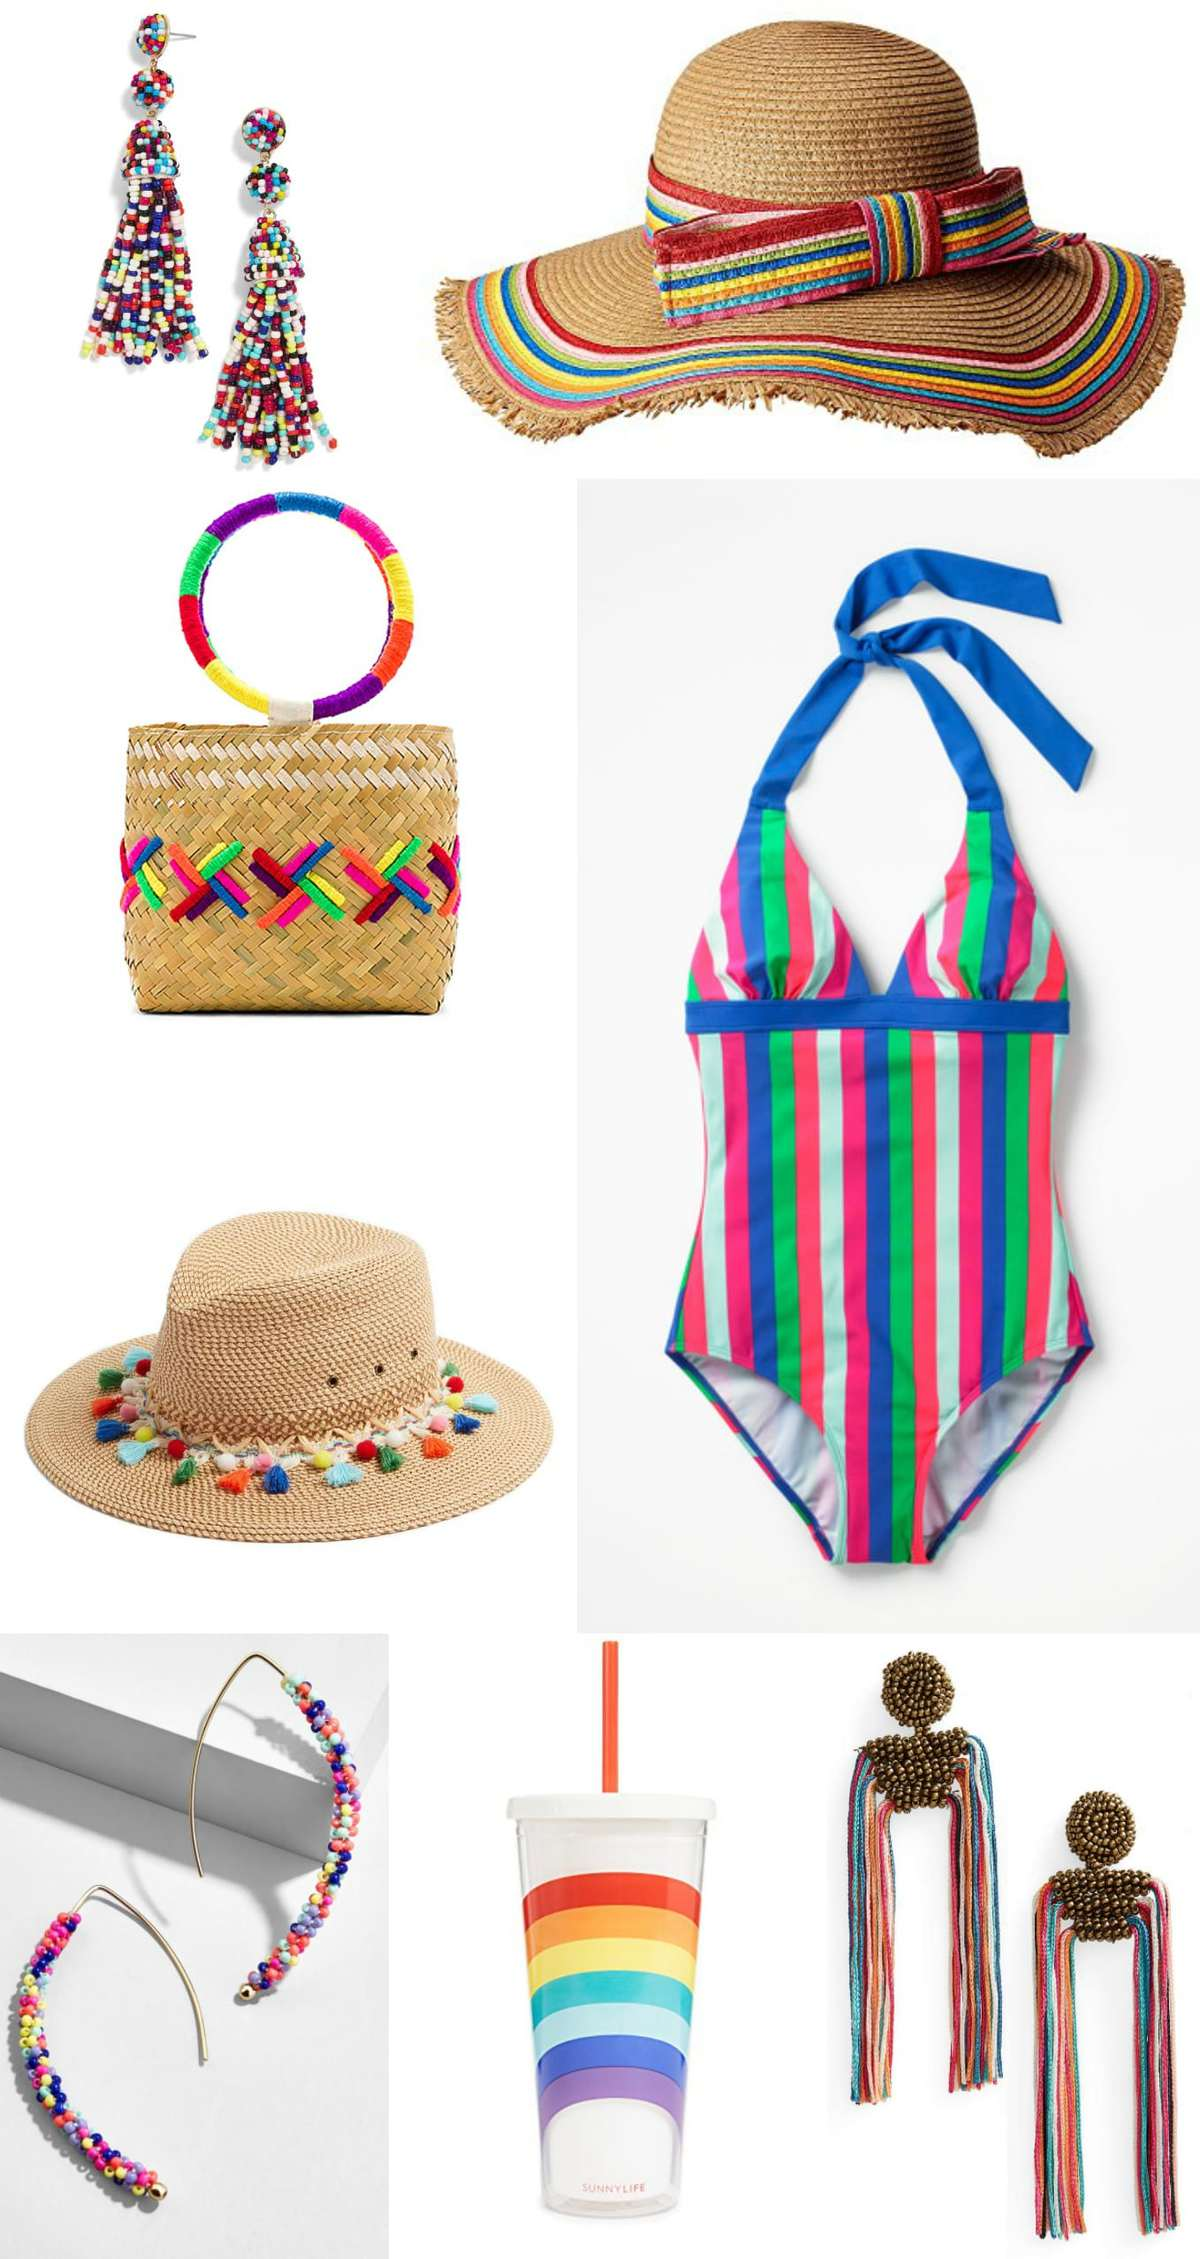 The rainbow fashion trend for 2018 - incorporate it into your wardrobe with a handbag full of color and high on style featured by popular DC petite fashion blogger, Wardrobe Oxygen